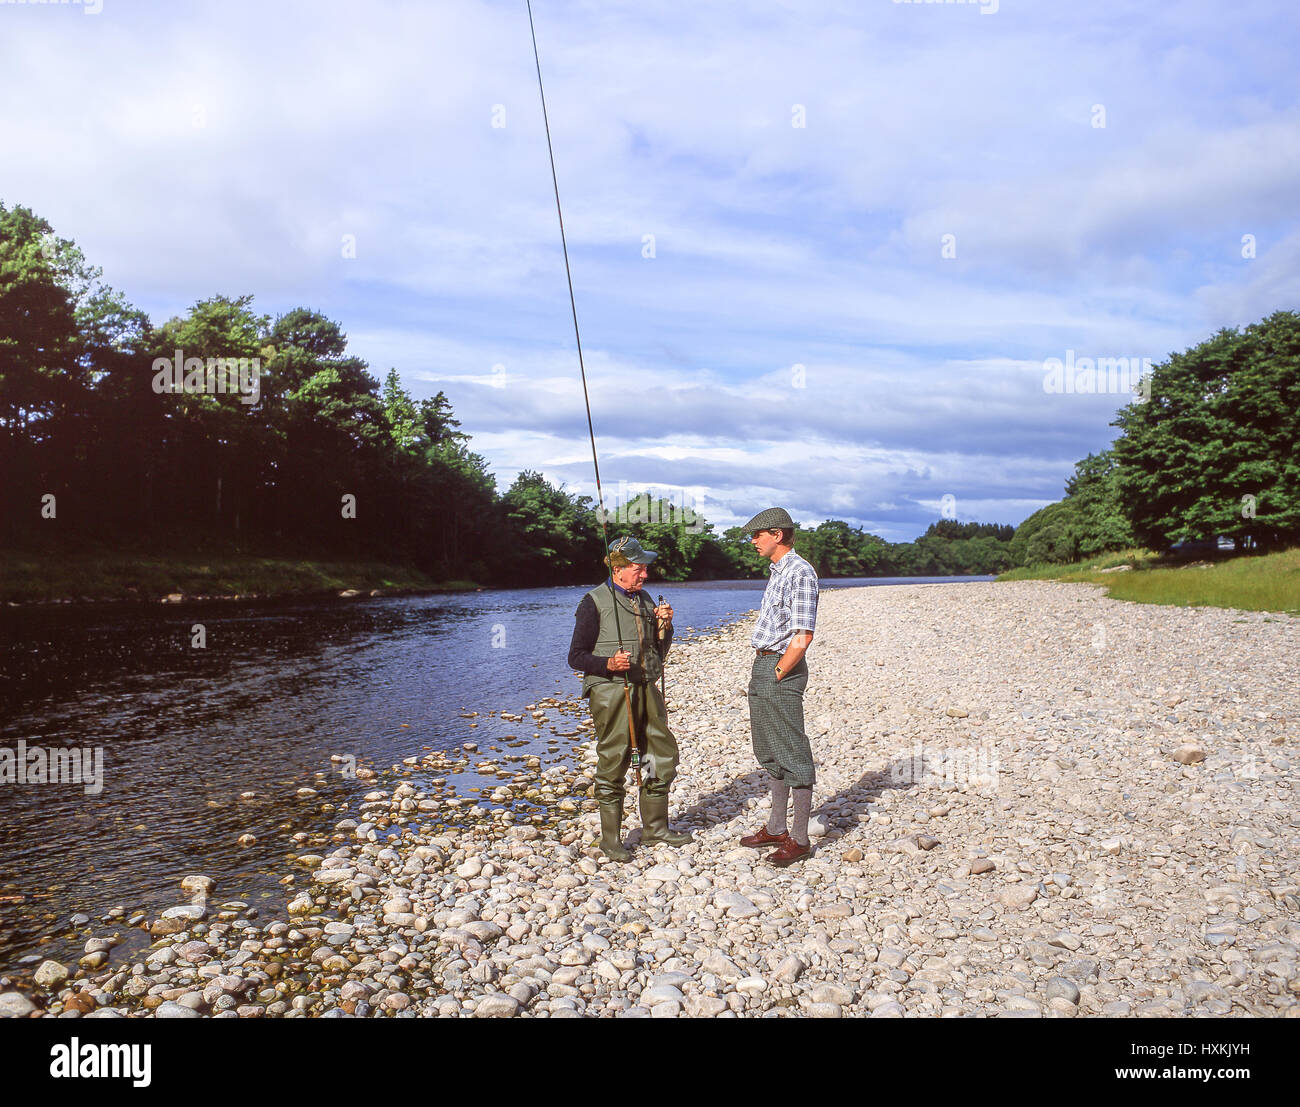 Salmon fisherman and Gillie on banks of River Dee, Aberdeenshire, Scotland, United Kingdom - Stock Image